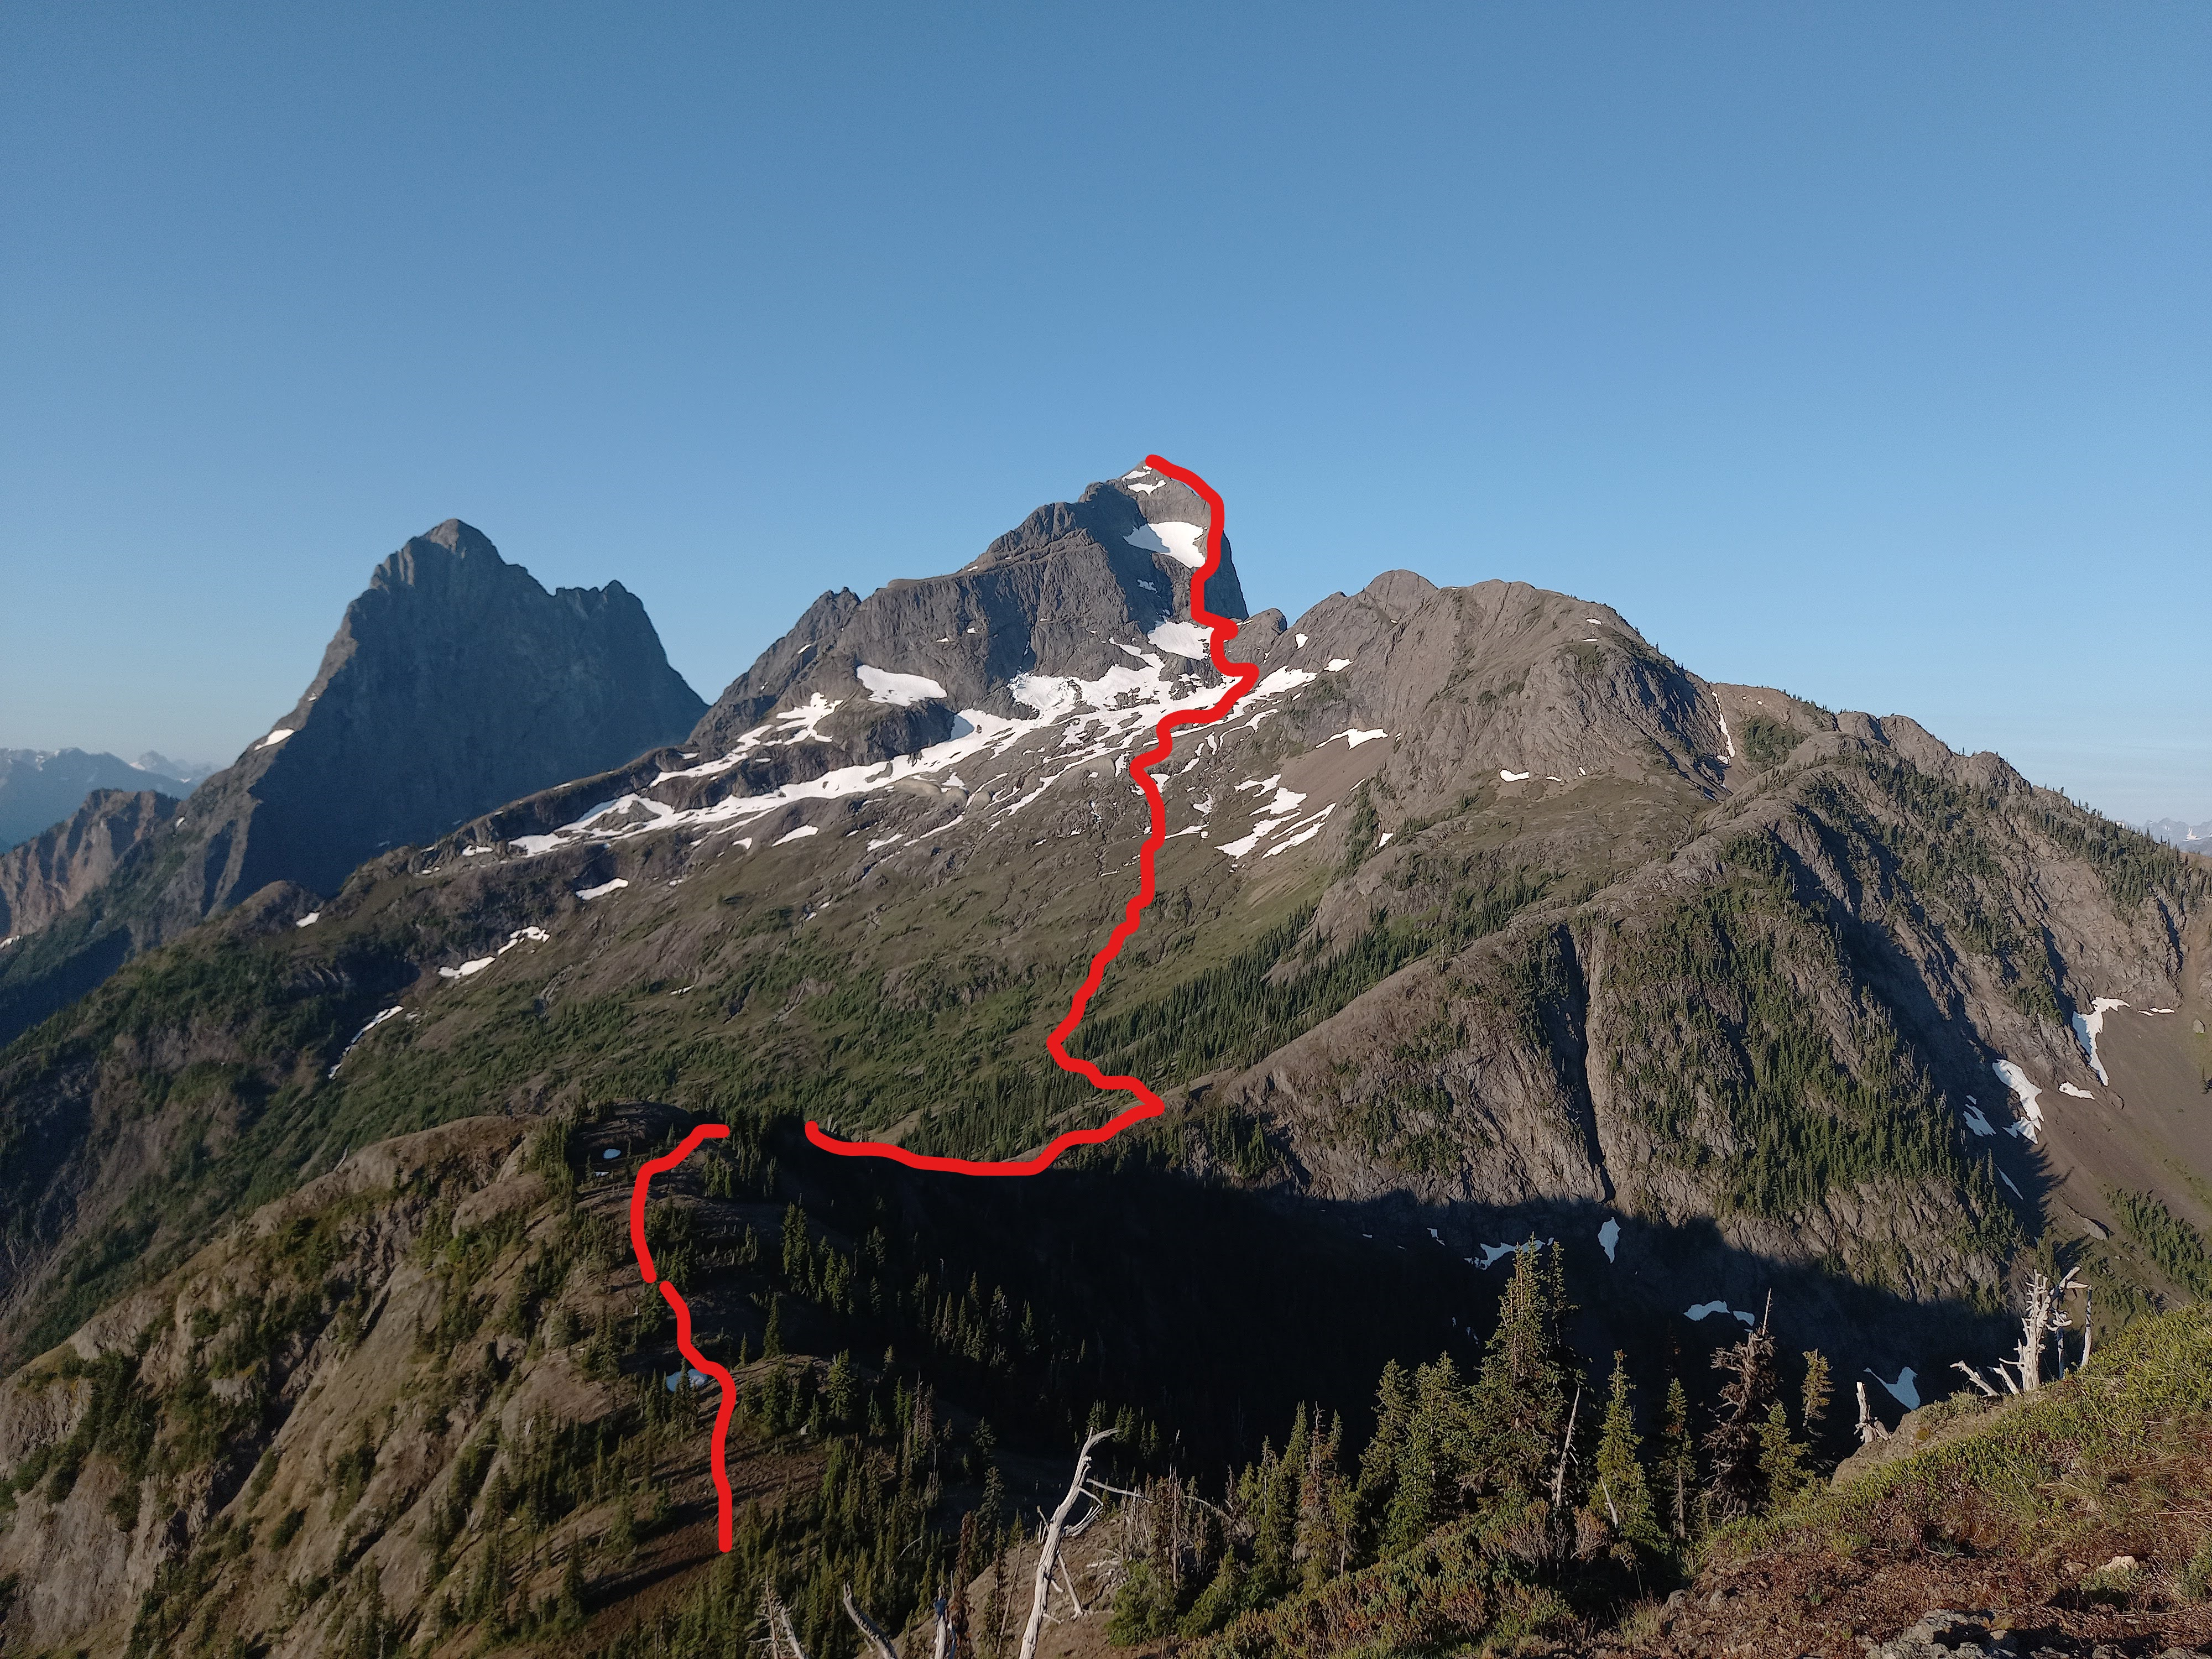 Approximate route from the US border to the summit of Hozomeen Mtn.